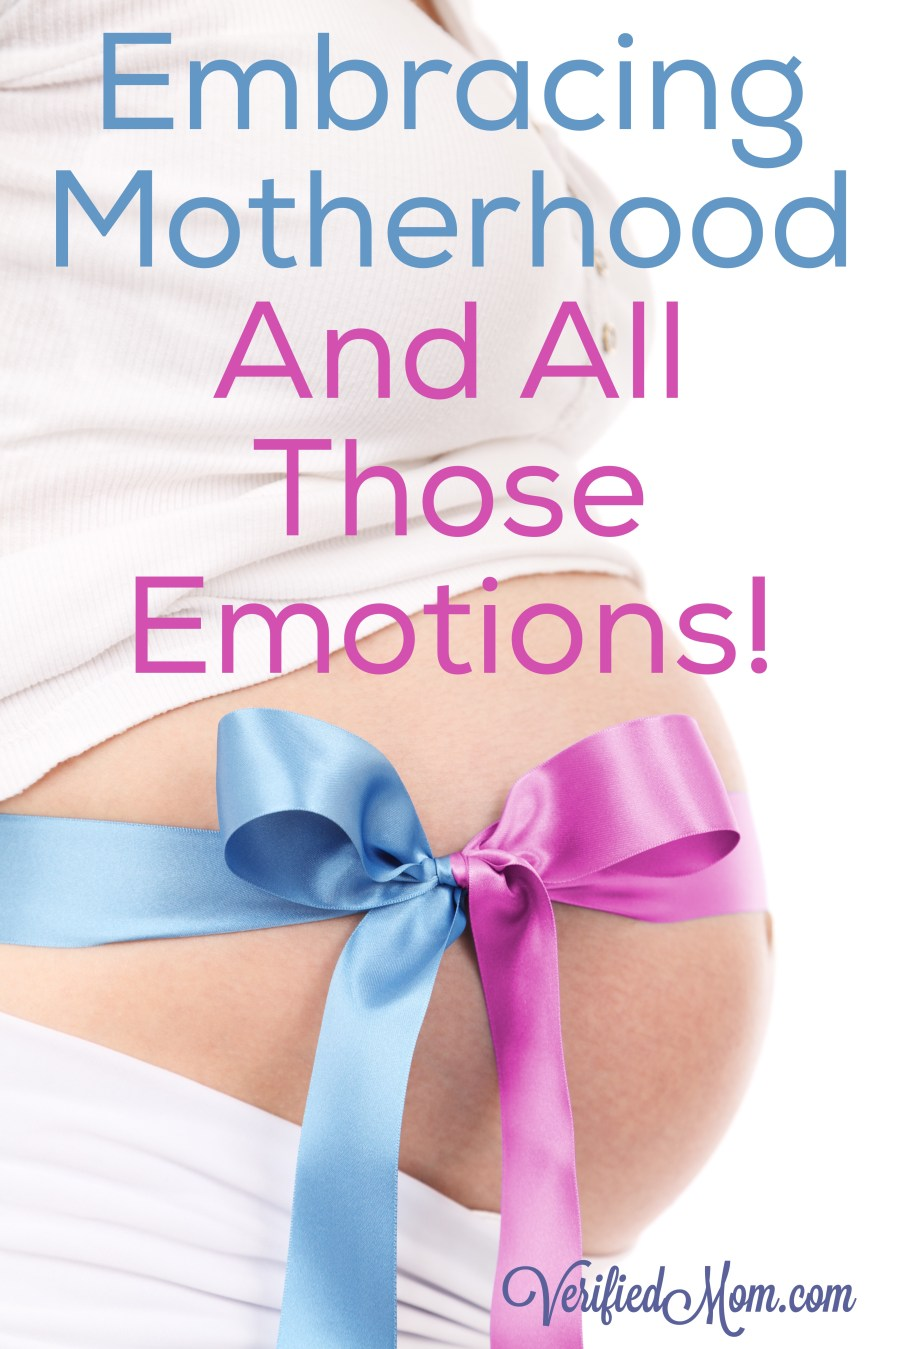 Embracing Motherhood And All Those Emotions